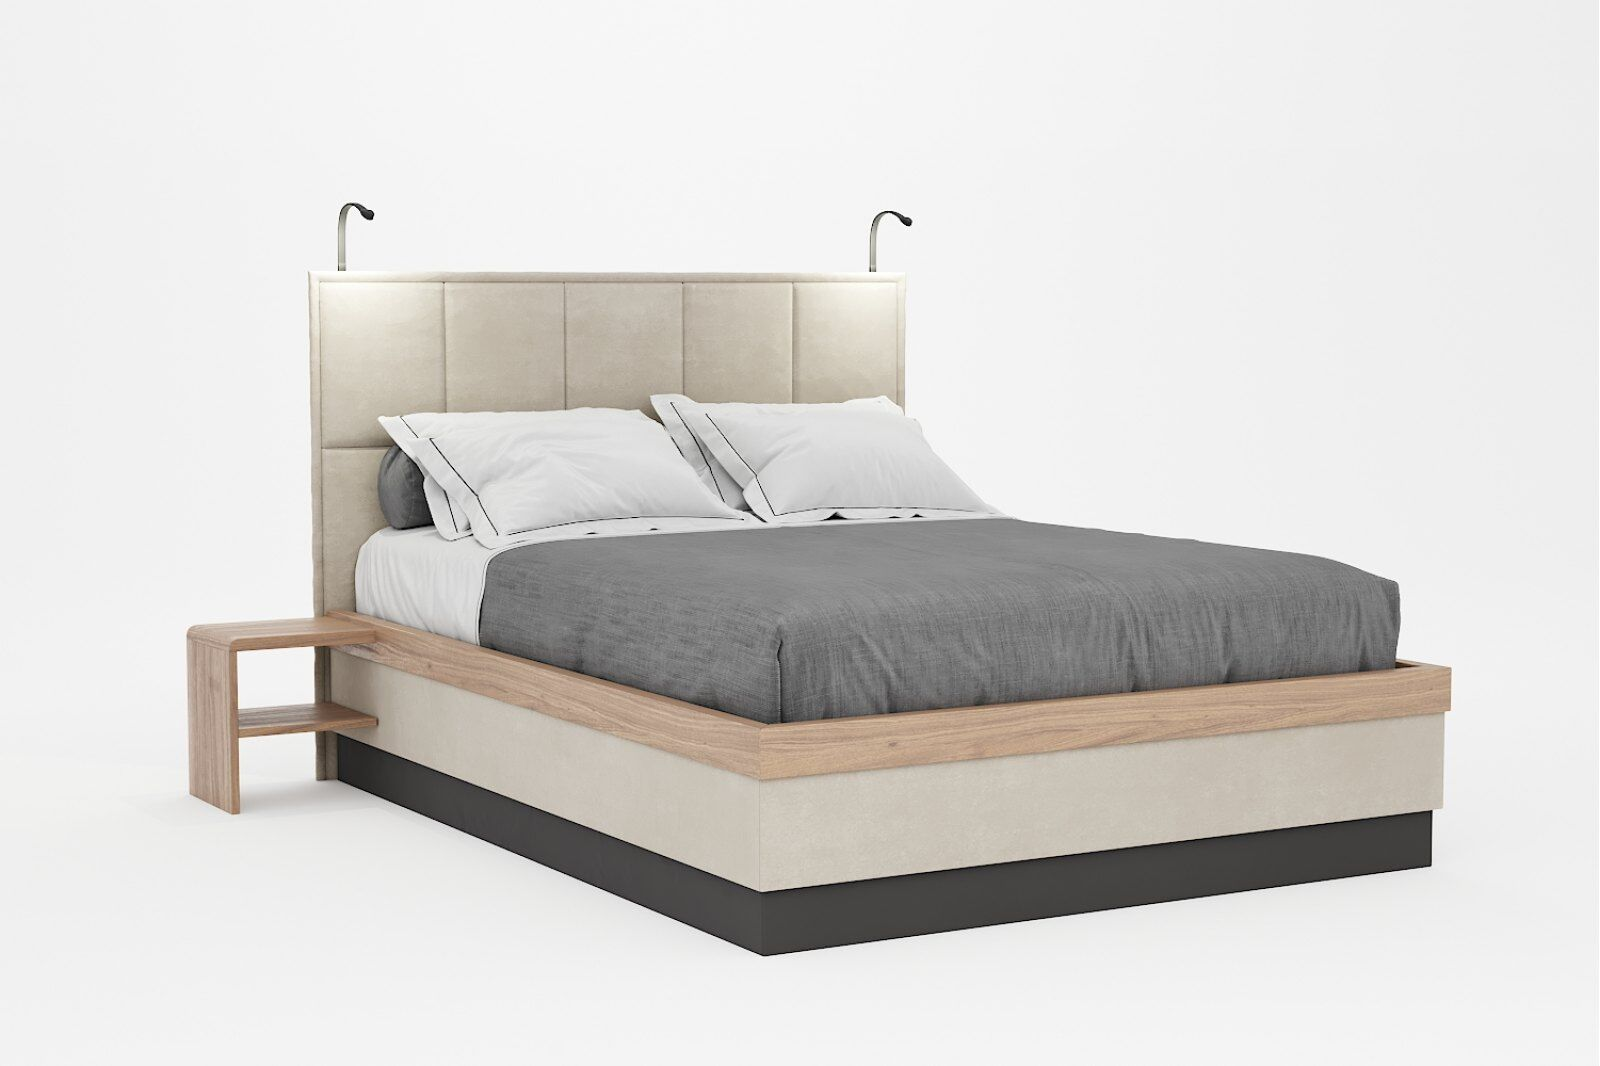 Tivoli Double Bed with Side Tables / 1